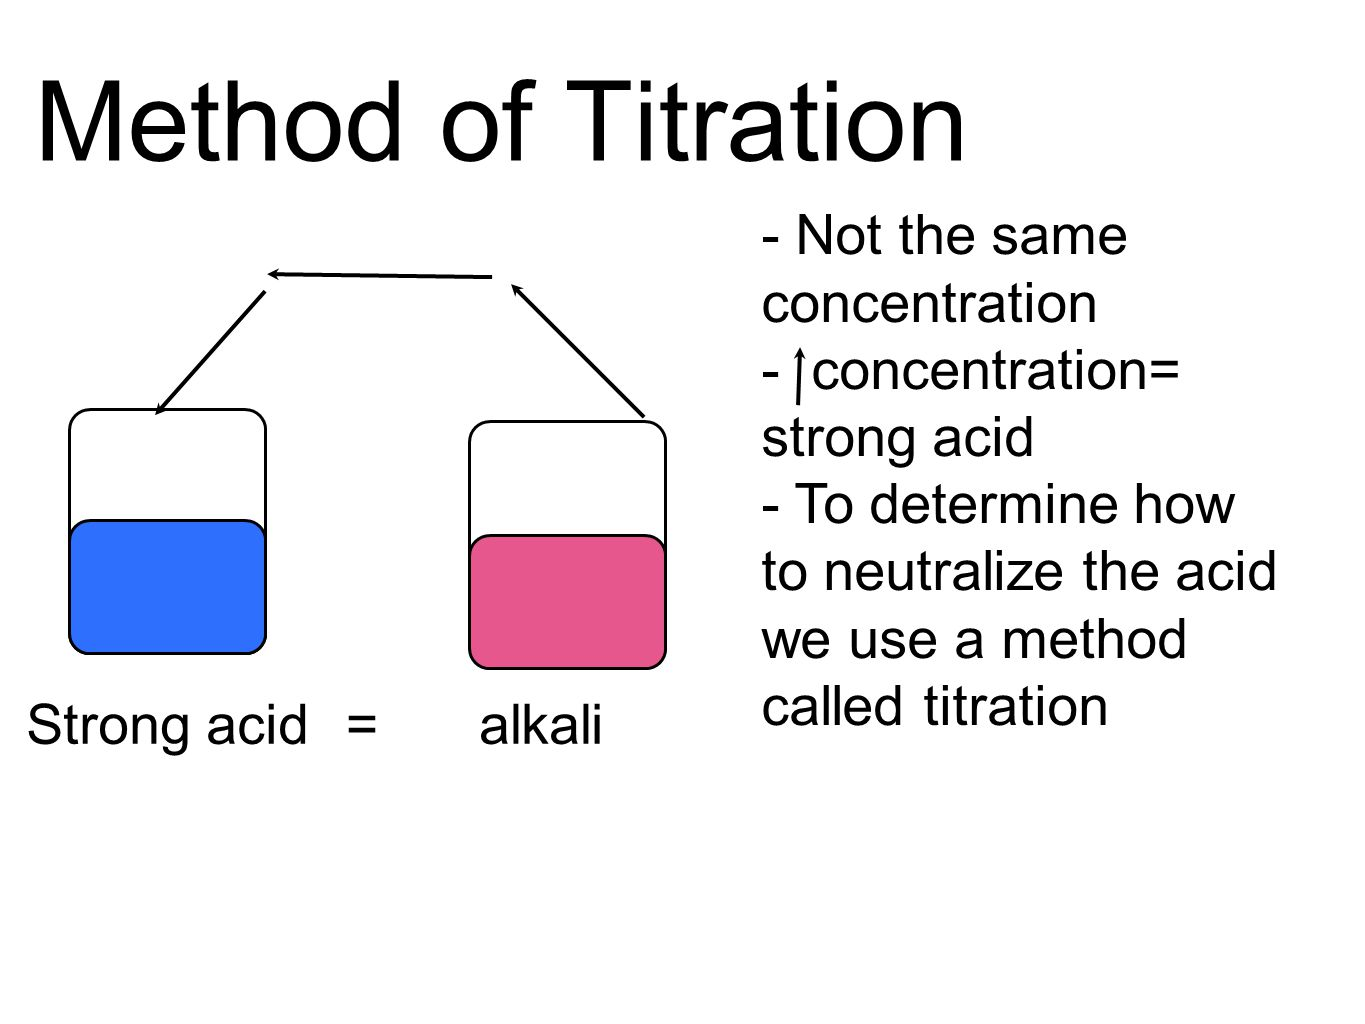 Method of Titration - Not the same concentration